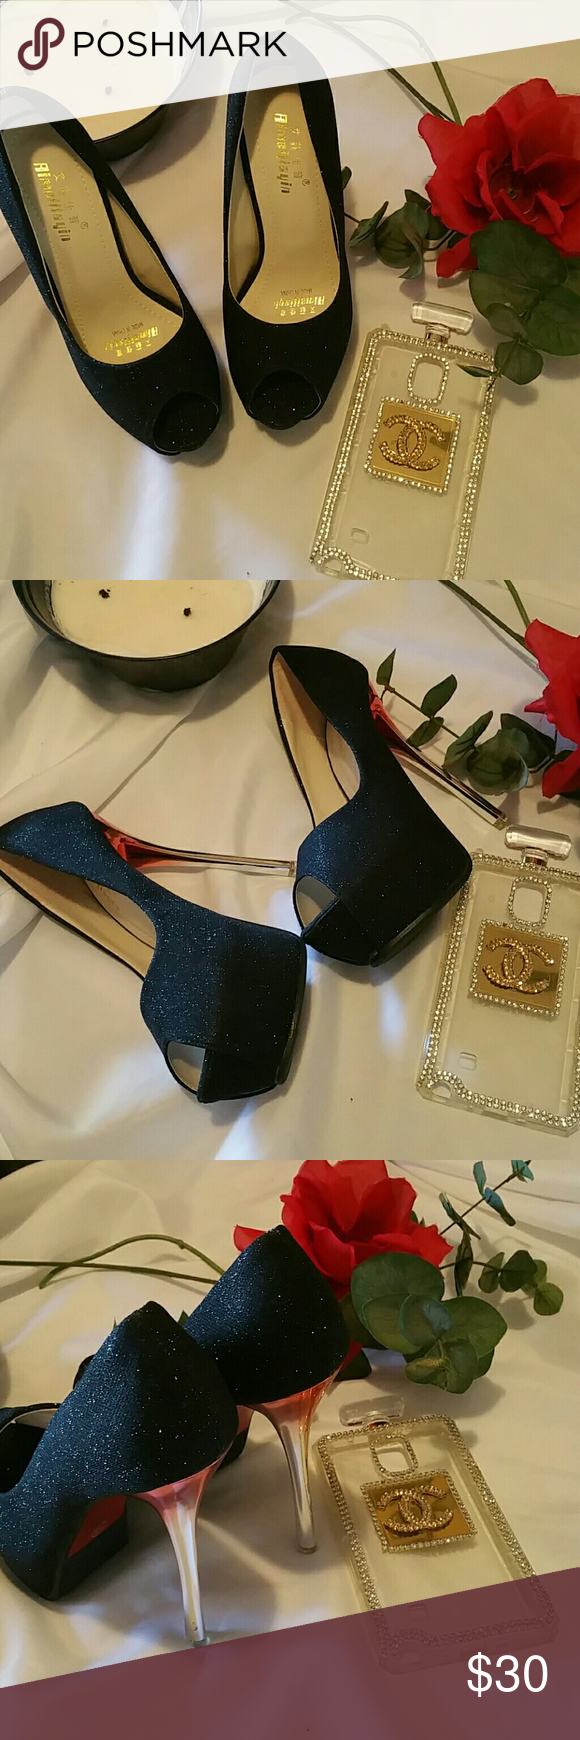 AMJY PLATFORM HEELS NIB  NEVER BEEN WORN COMES WITH BOX  DUST COVERS TO SMALL SIZE 36  Black with Glitter silver and red heel AMJY Shoes Platforms